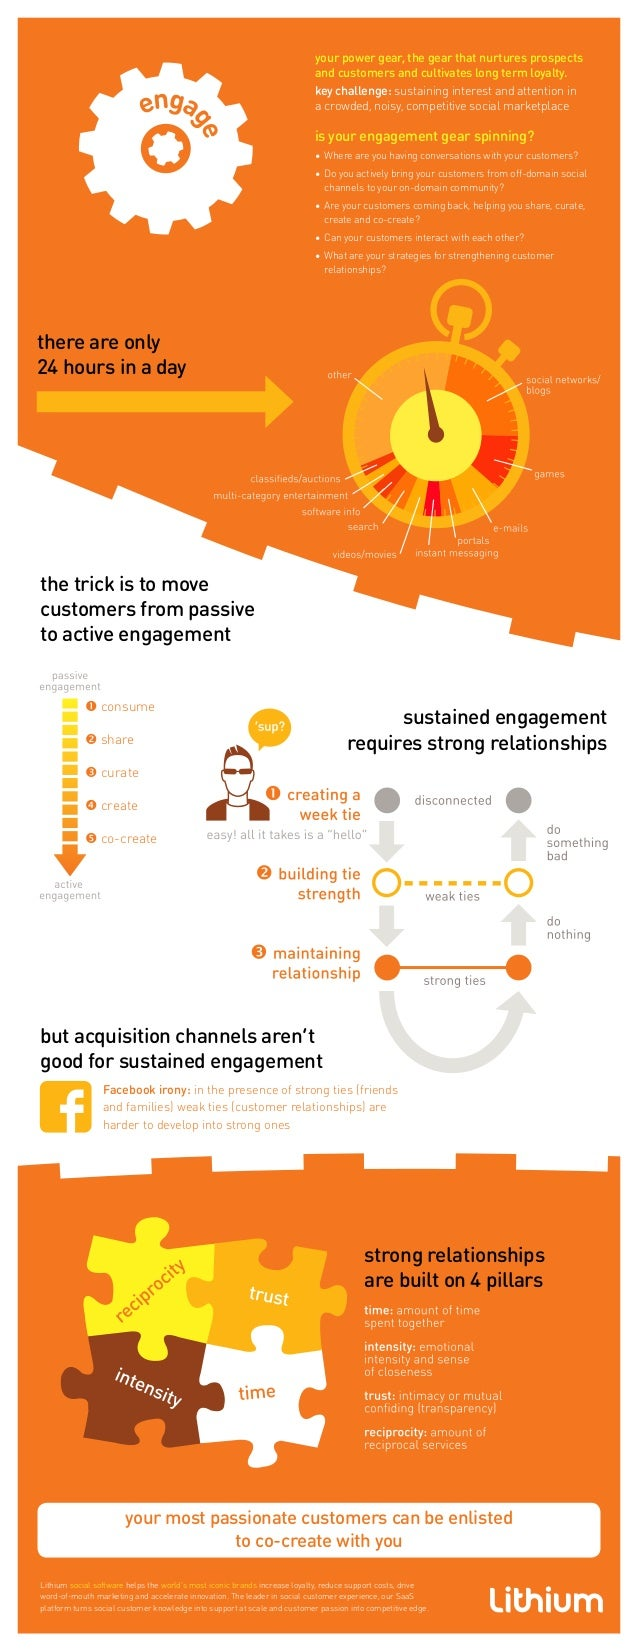 there are only 24 hours in a day the trick is to move customers from passive to active engagement strong relationships are...